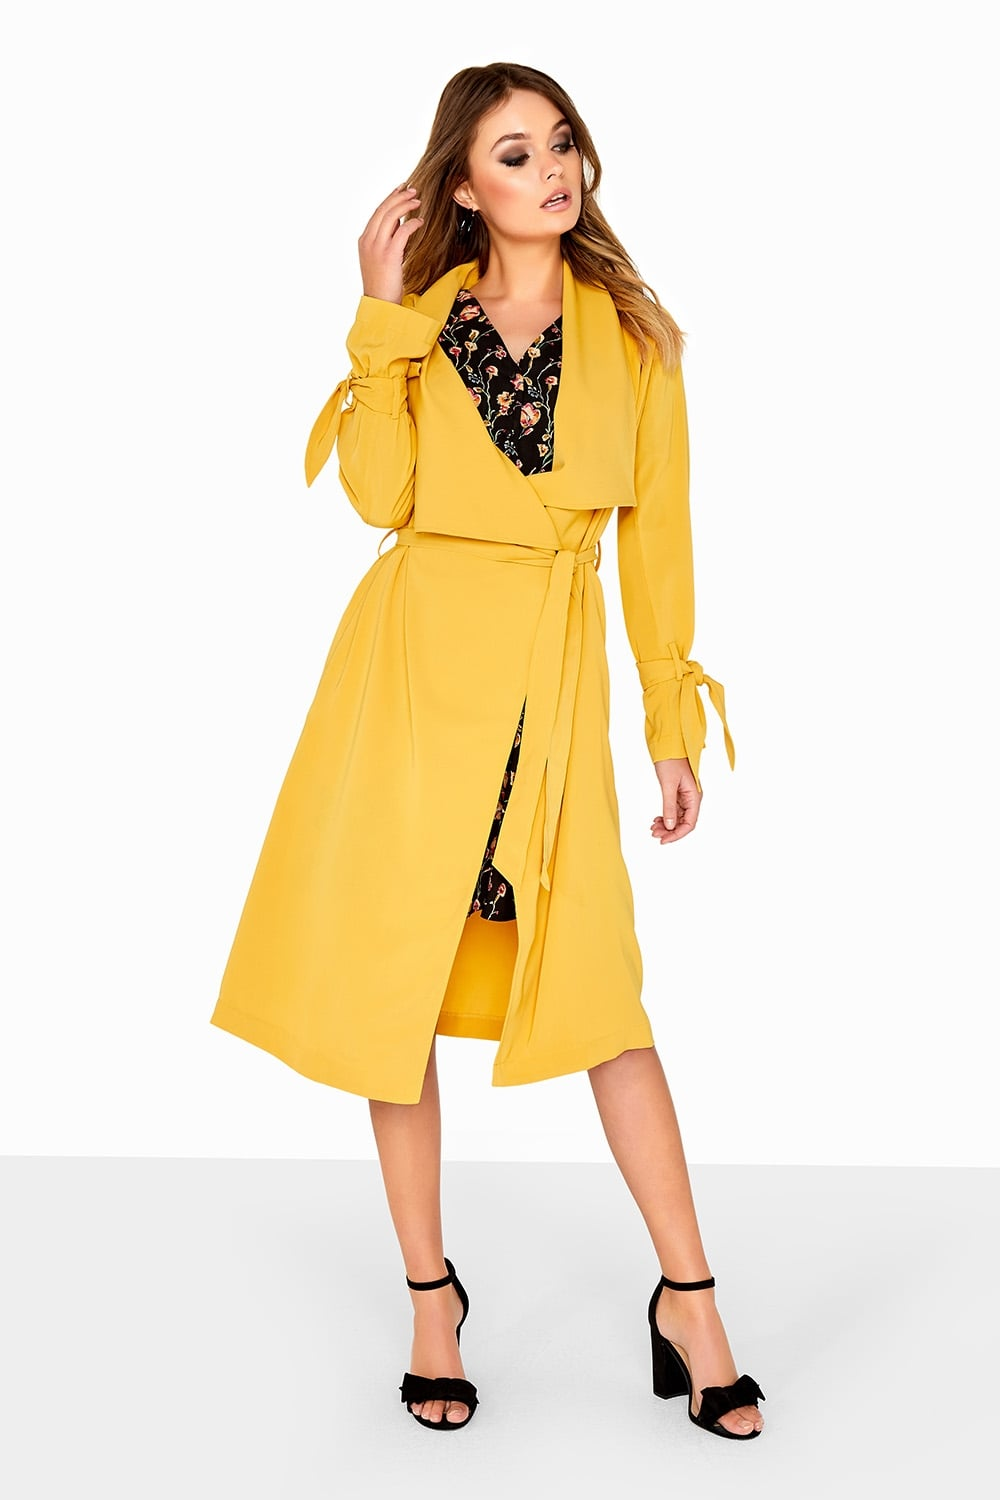 68edd52a3242 Outlet Girls On Film Yellow Wrap Jacket - Outlet Girls On Film from Little  Mistress UK